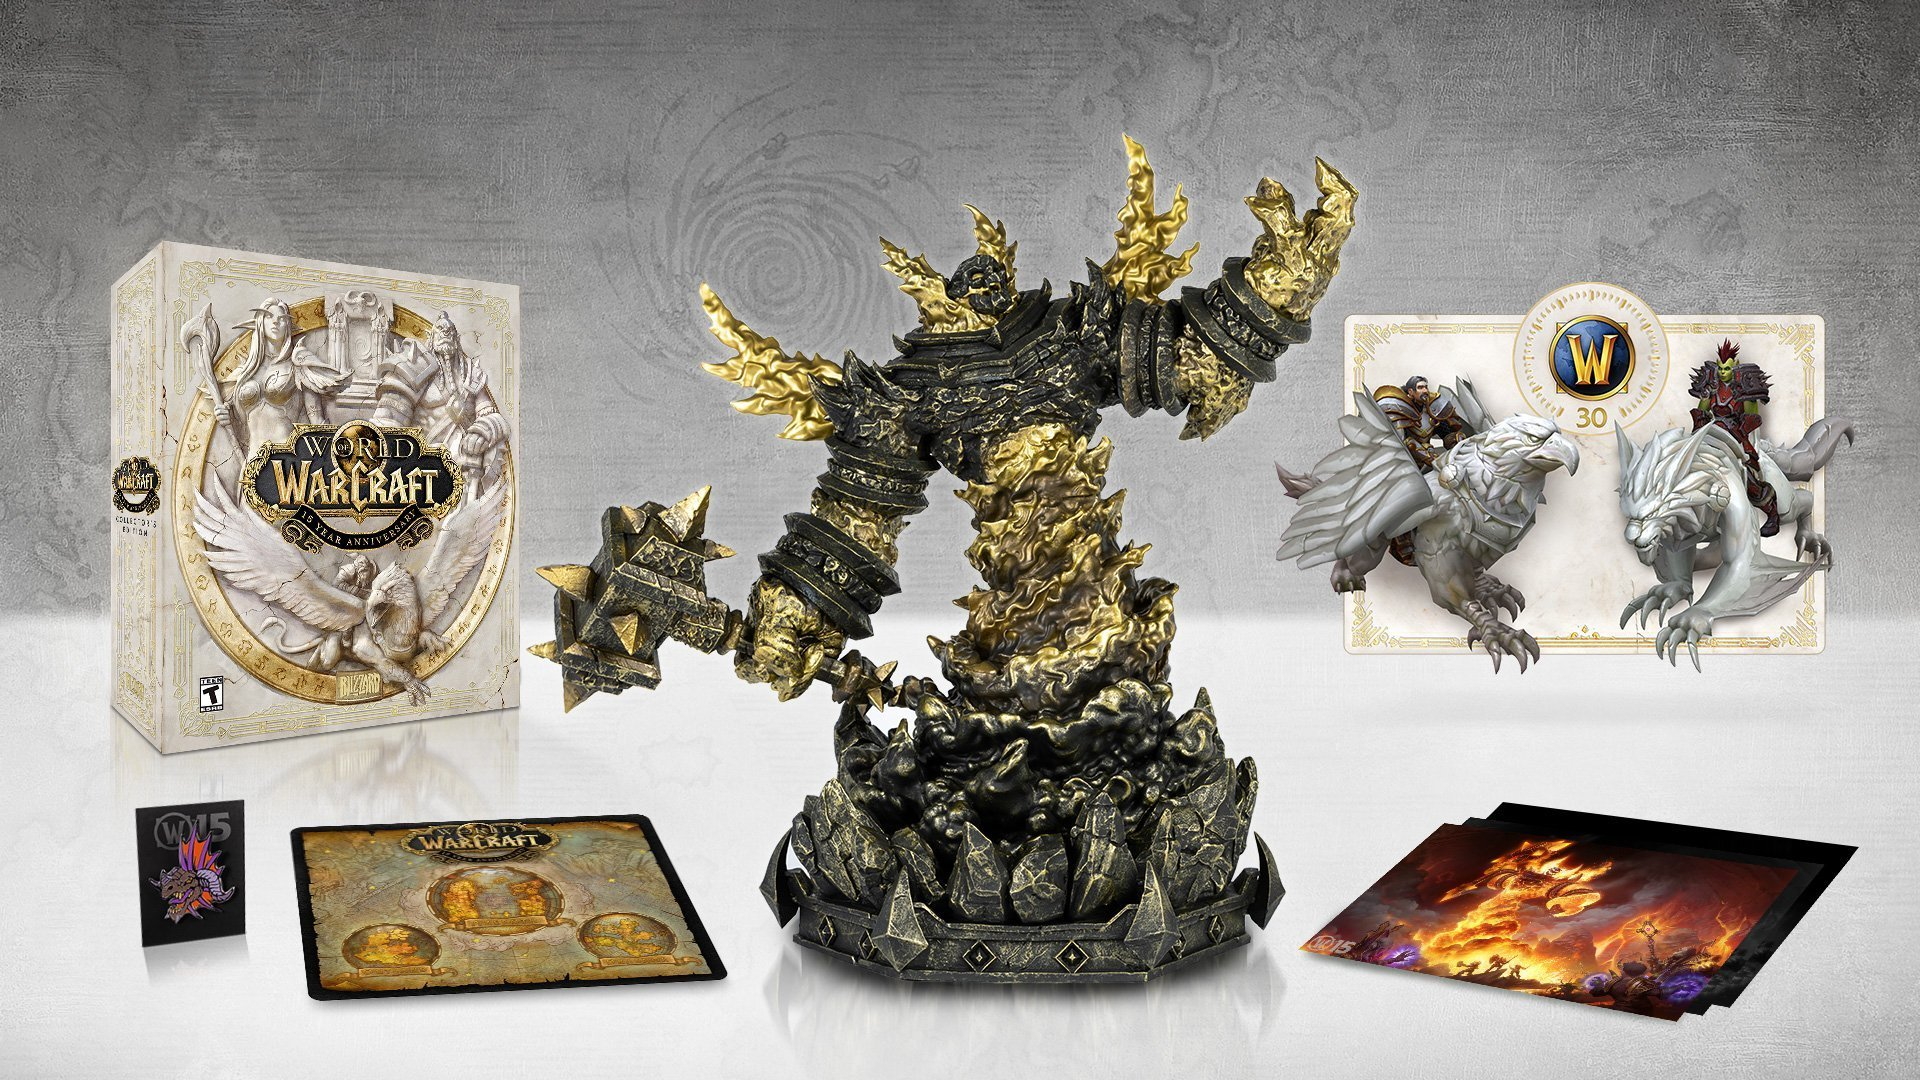 World of Warcraft 15th Anniversary Collector's Edition wow